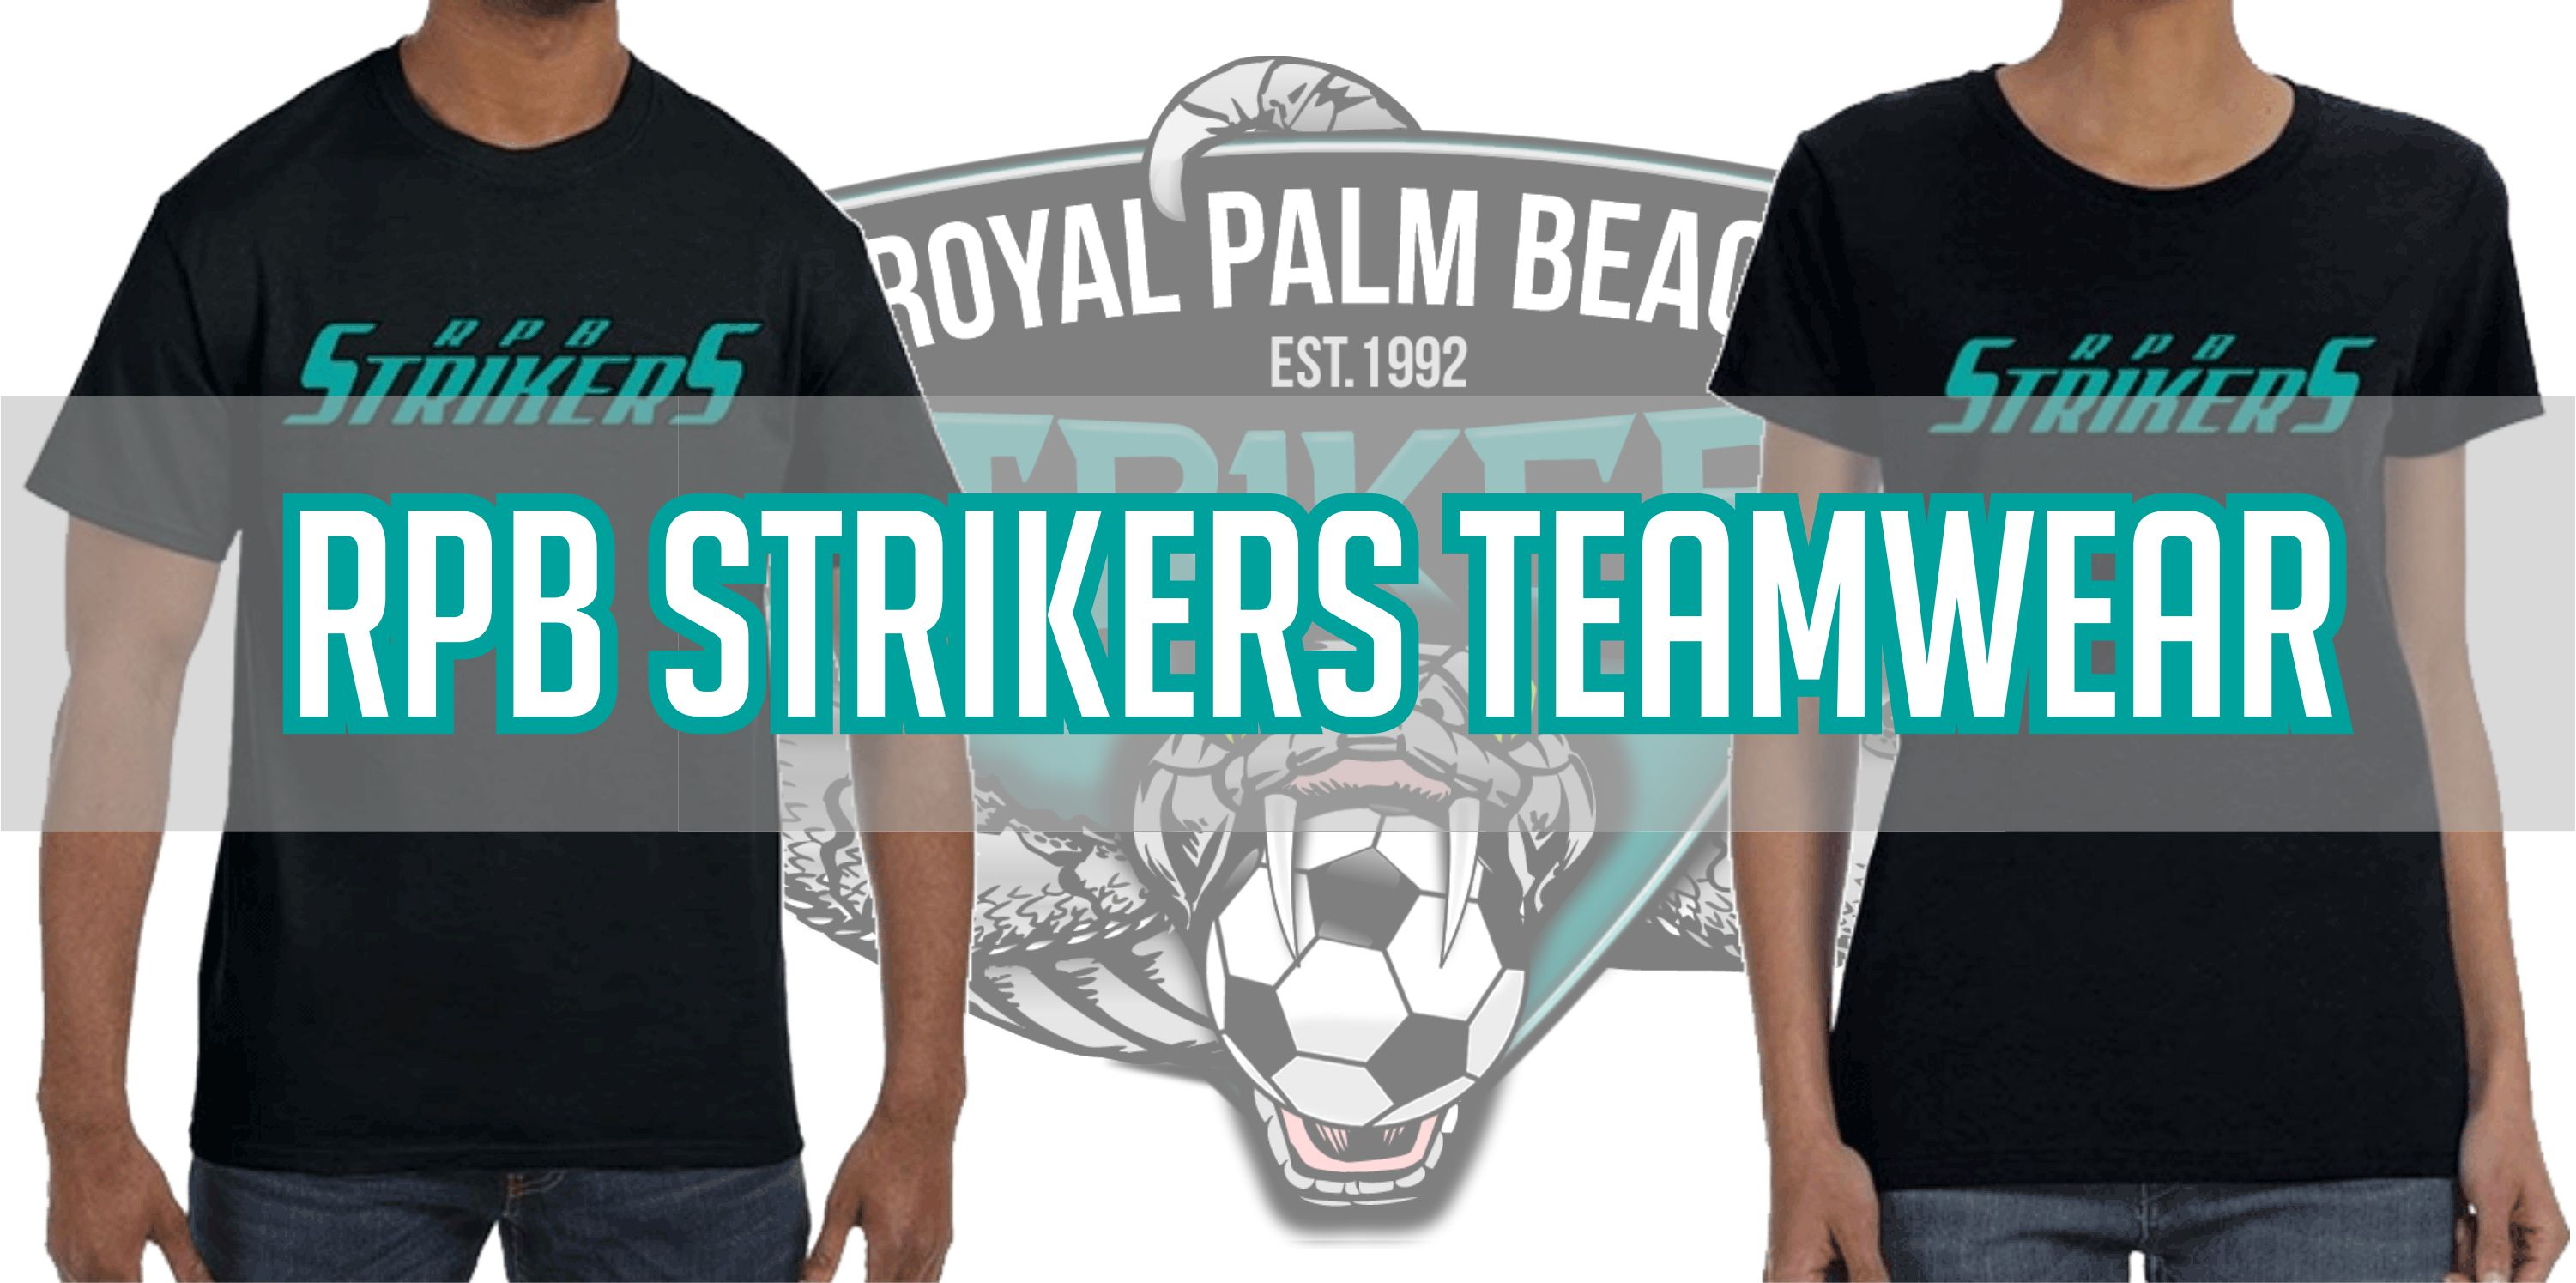 Royal Palm Beach Strikers Teamwear